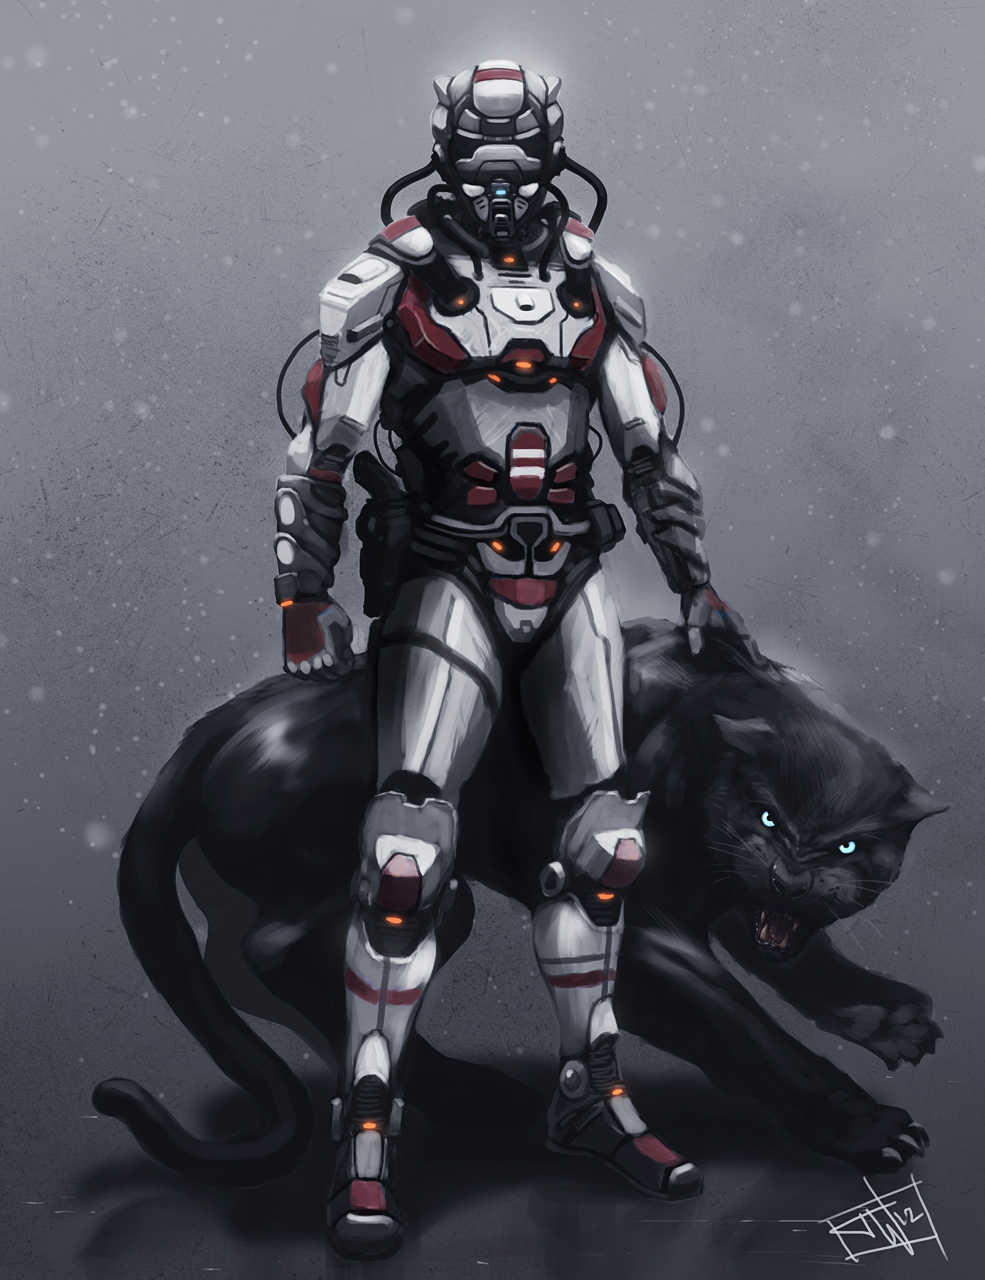 Claxton CHOW: sci-fi hunter with pet by thomaswievegg